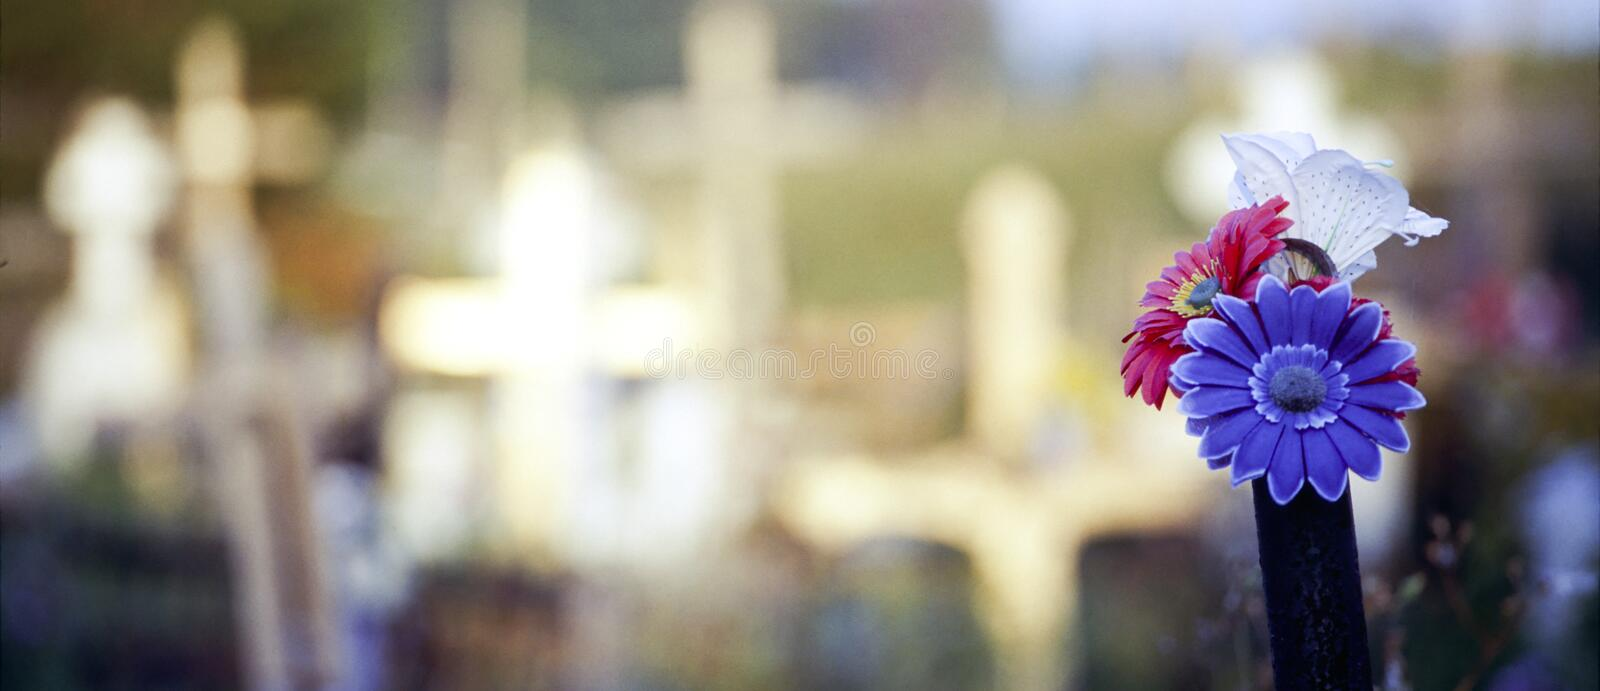 Cemetery Crosses & Flowers. Crosses and flowers in a cemetery royalty free stock image